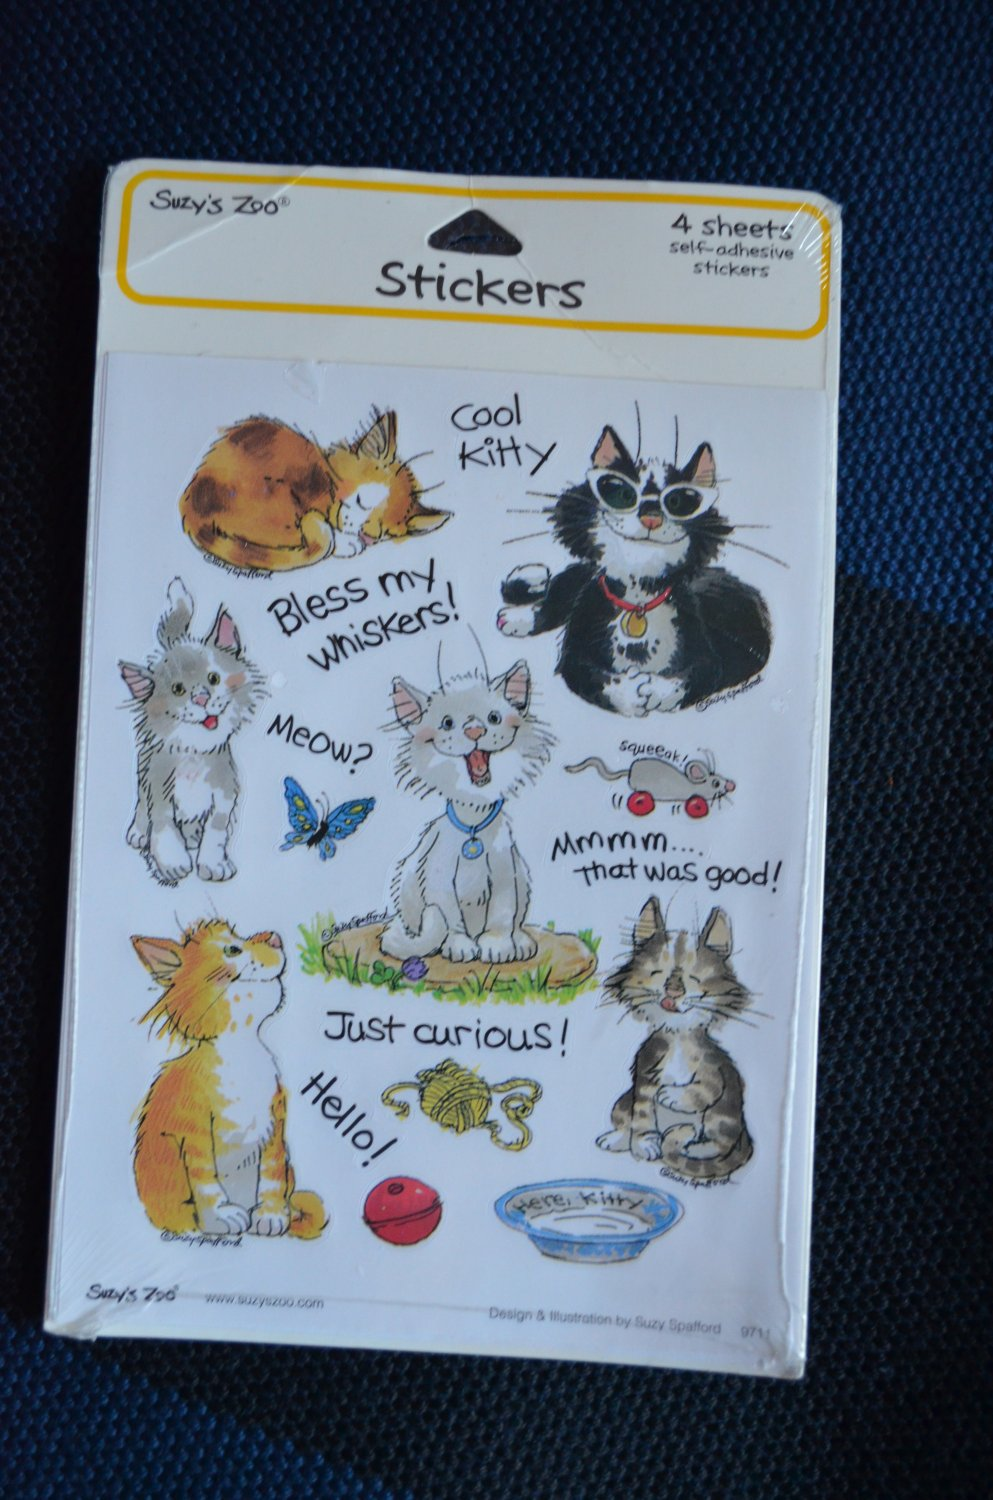 Suzy's Zoo Sticker 4 Sheets/pkg Cats Kittens Suzy Spafford 9711